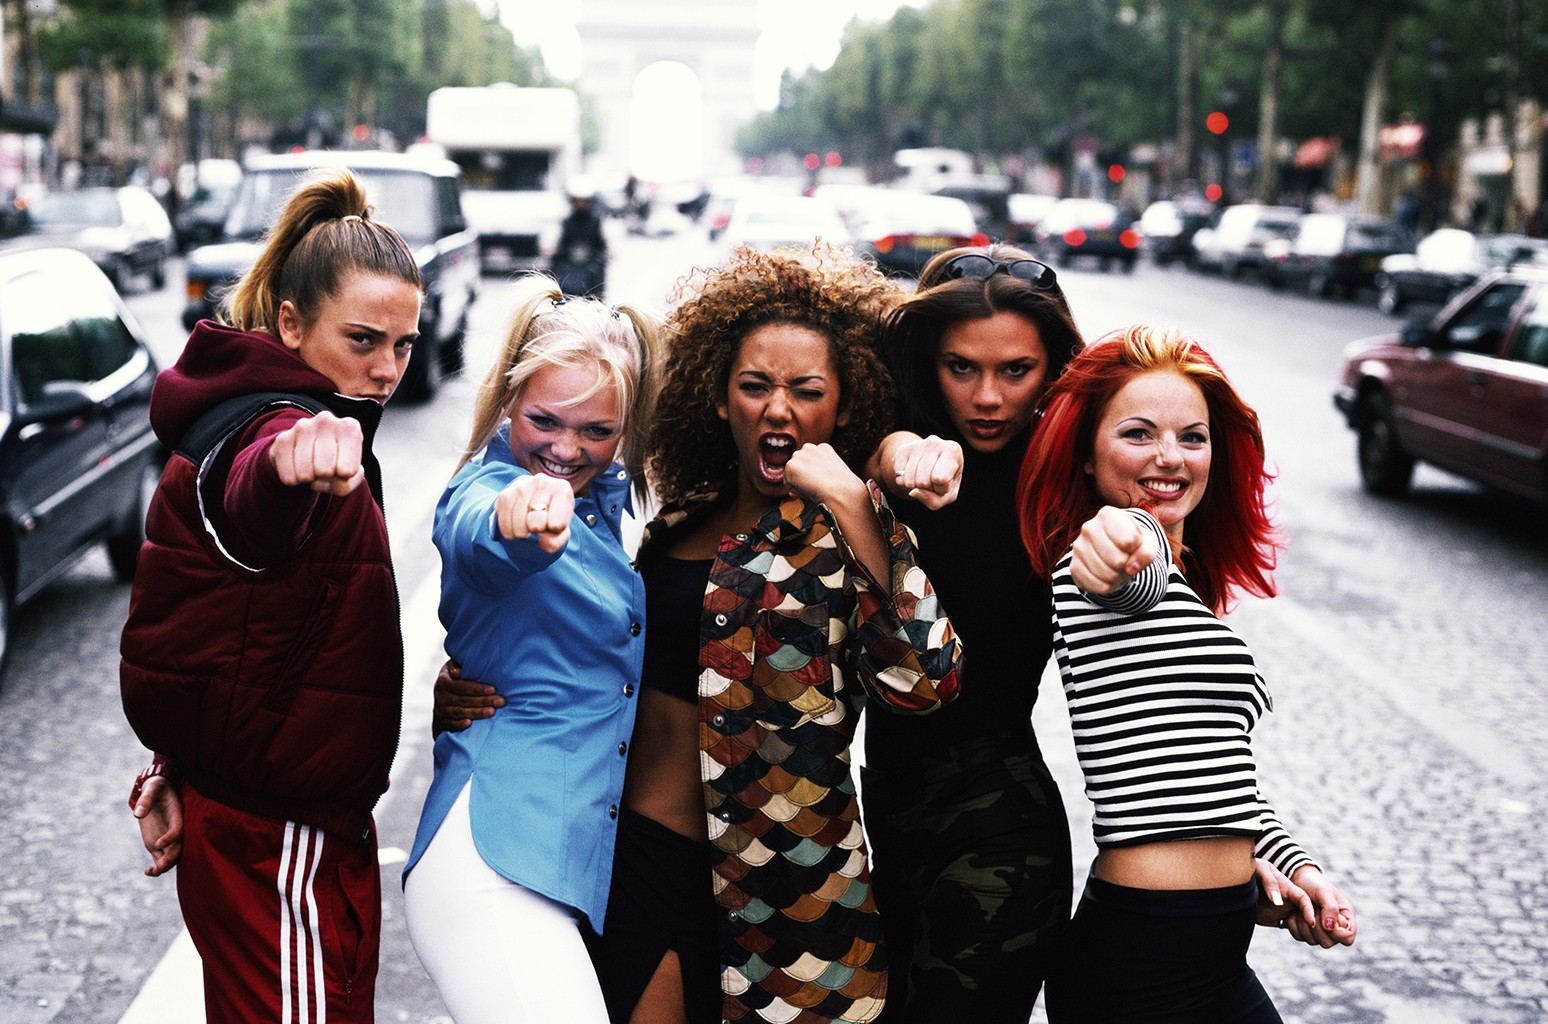 The Spice Girls photographed in 1996